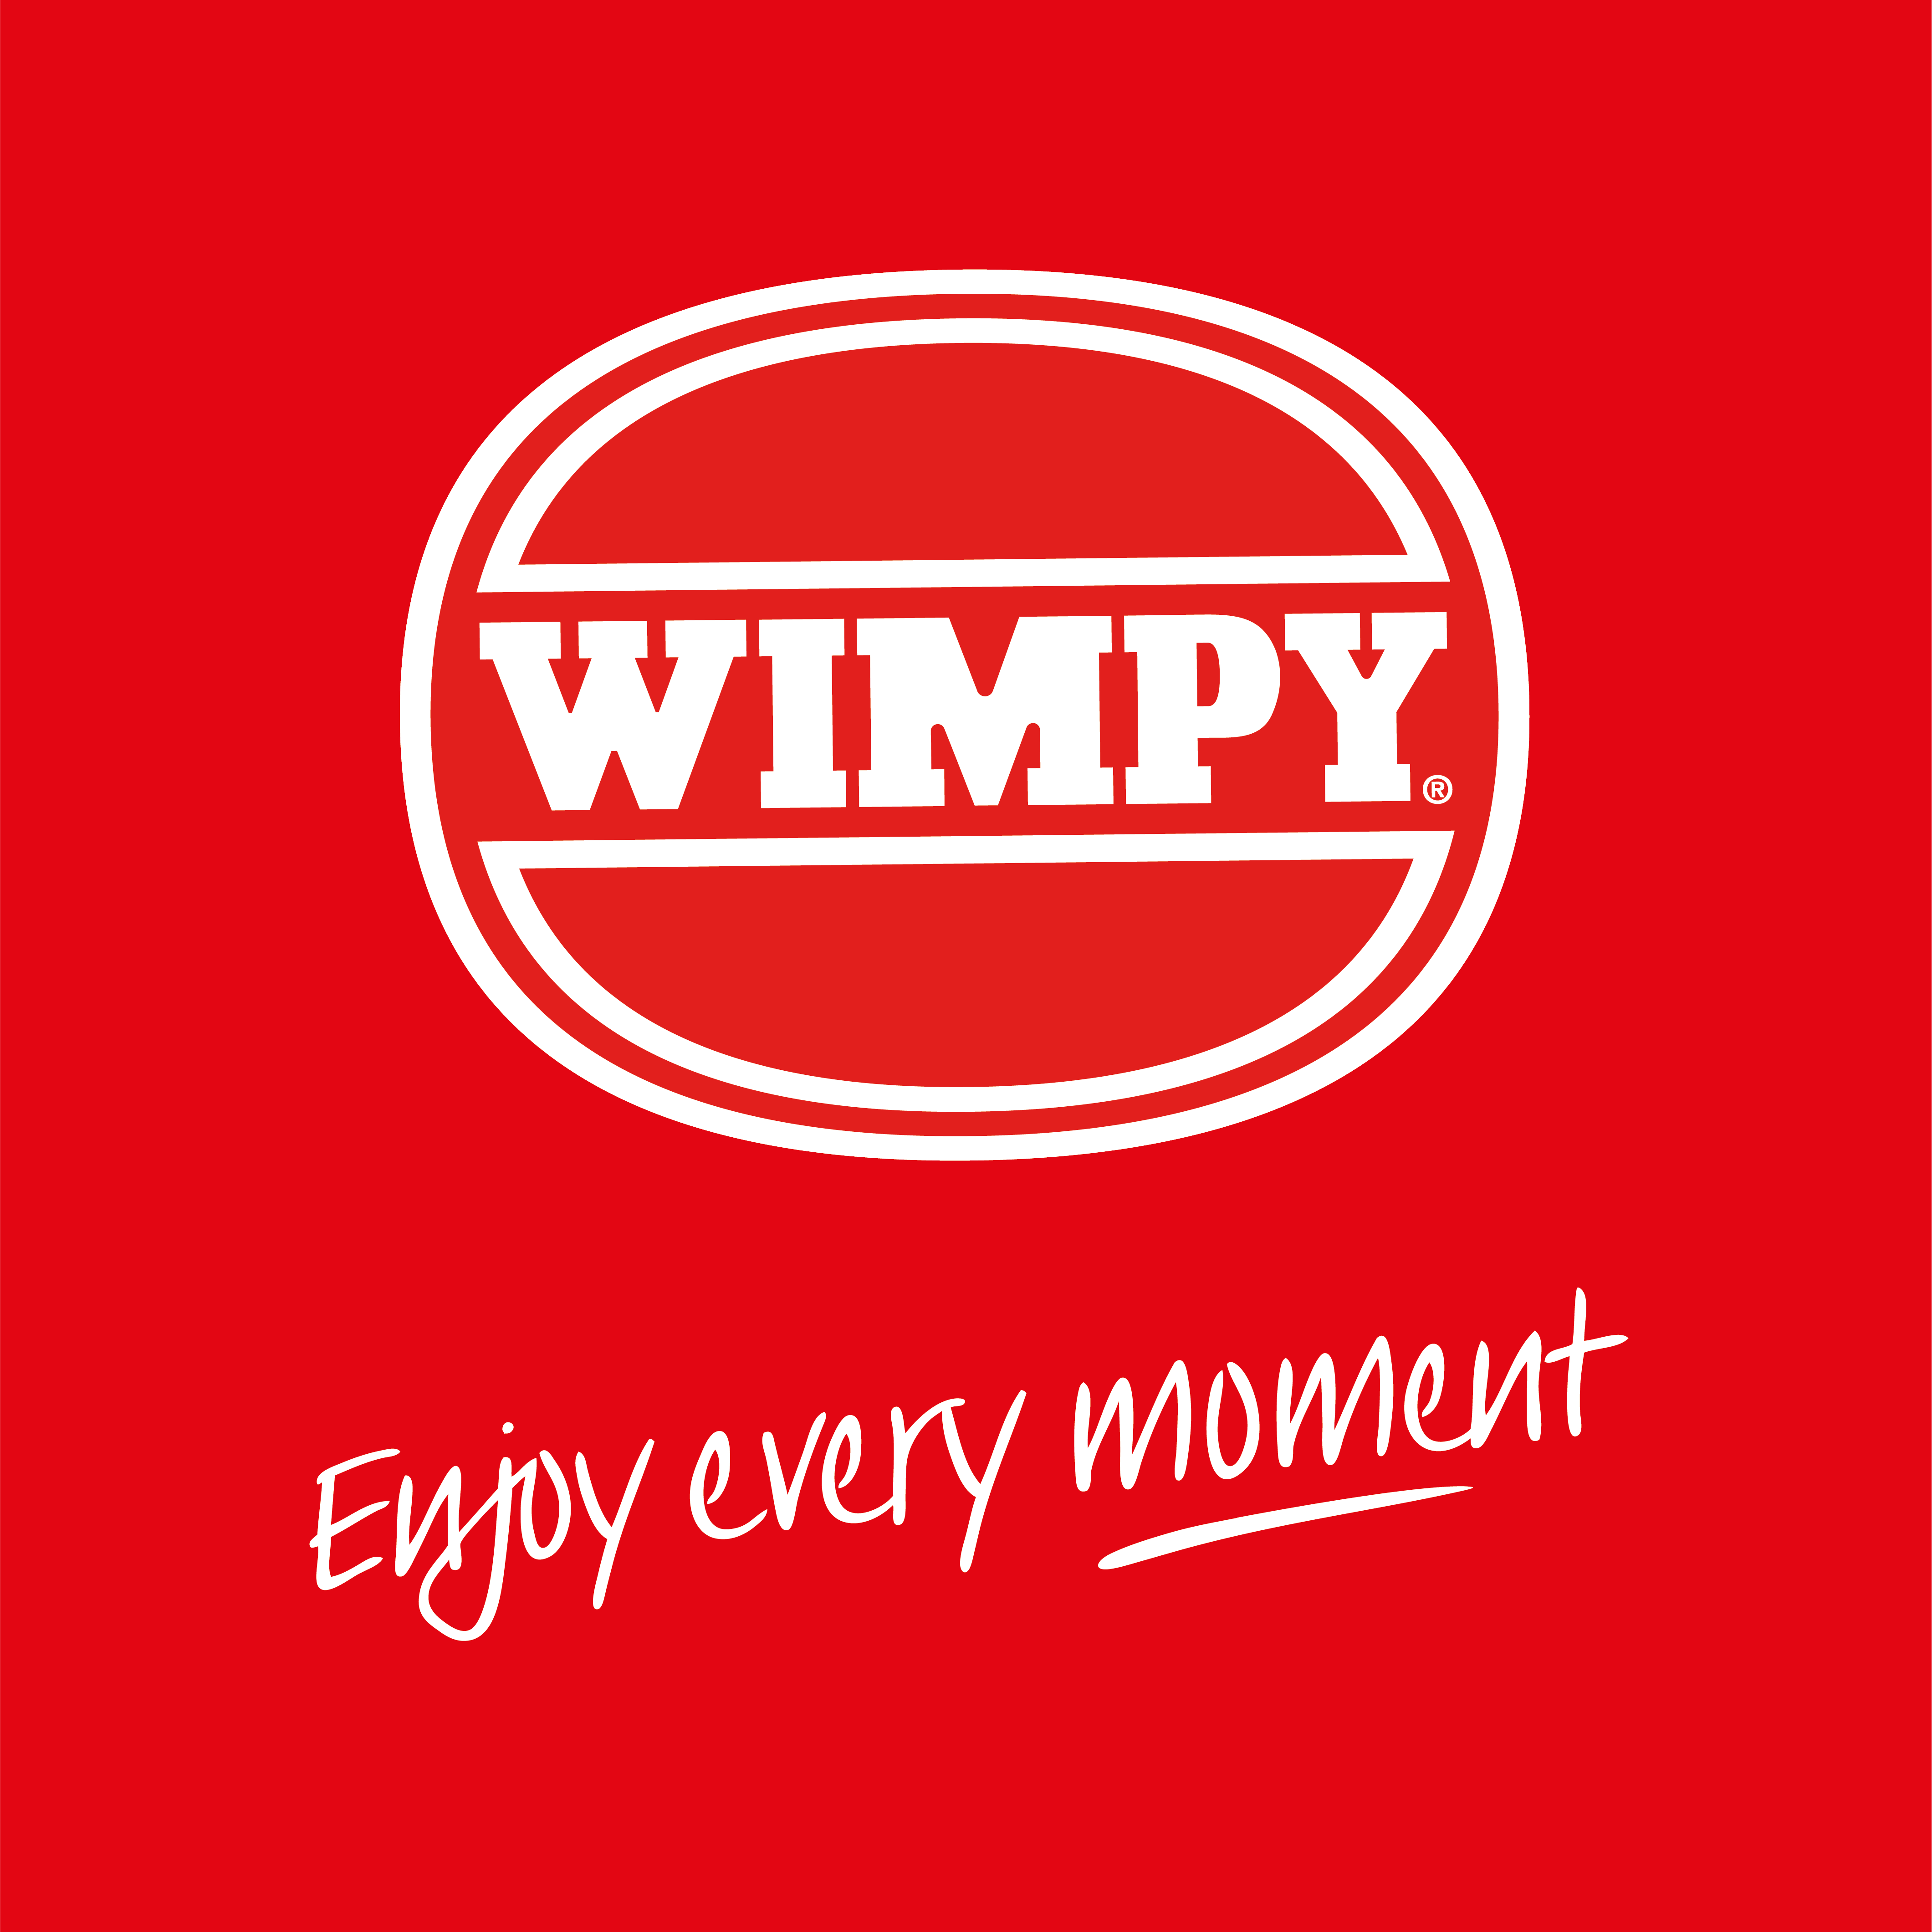 Wimpy - Sudbury, Essex CO10 1SZ - 01787 376488 | ShowMeLocal.com